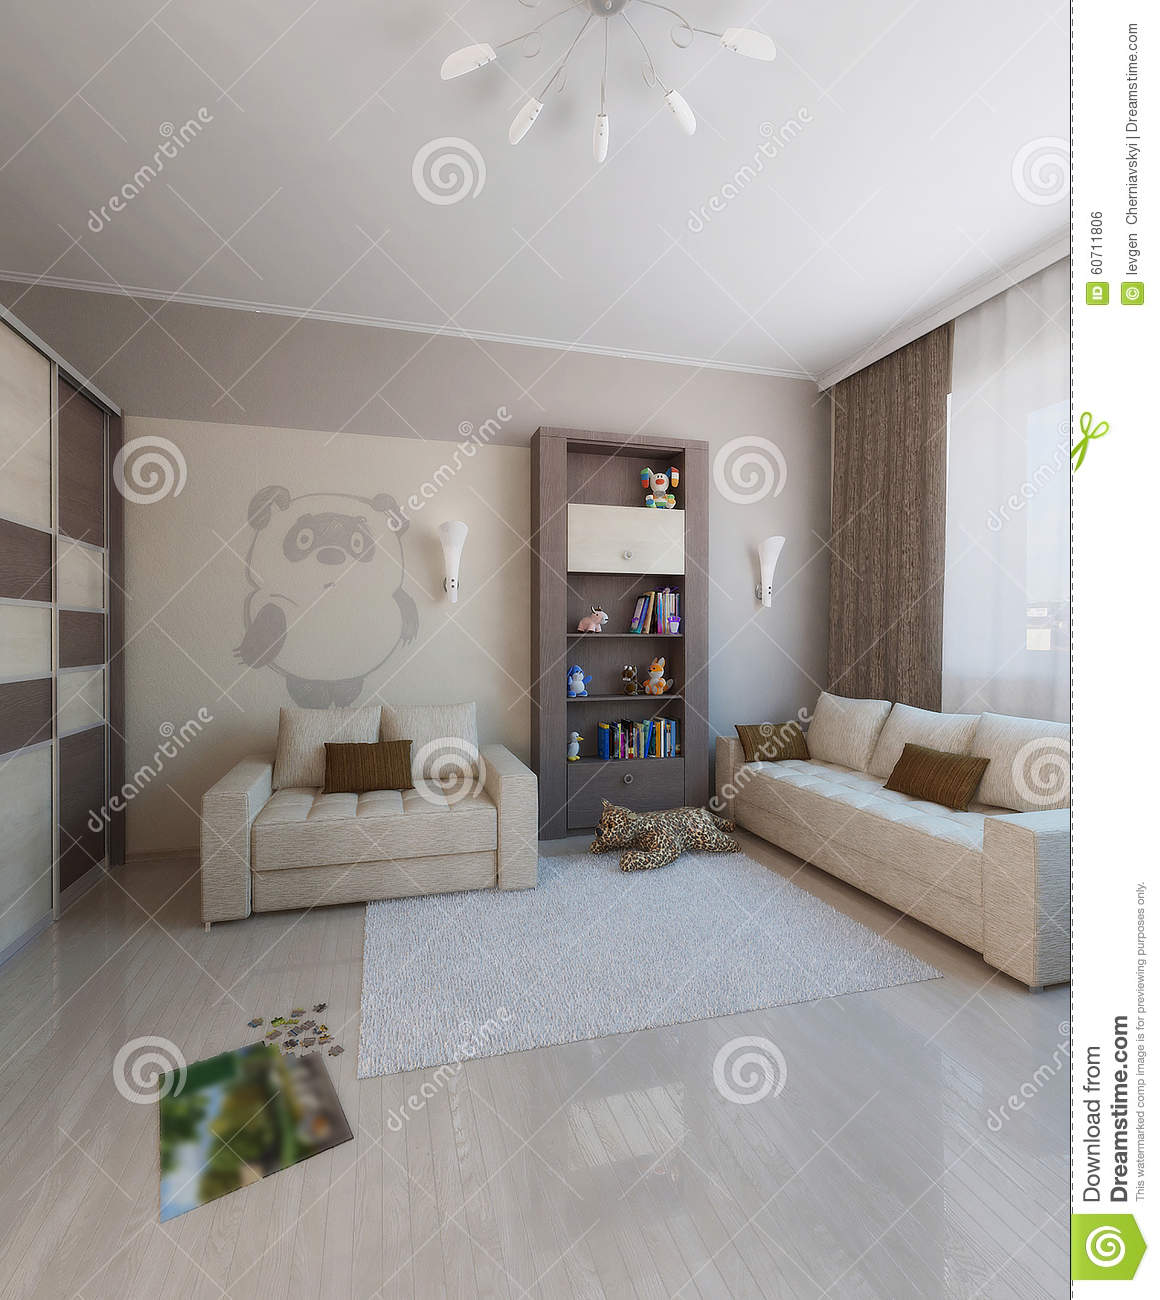 Children Room Interior Design, 3D Render Stock Photo